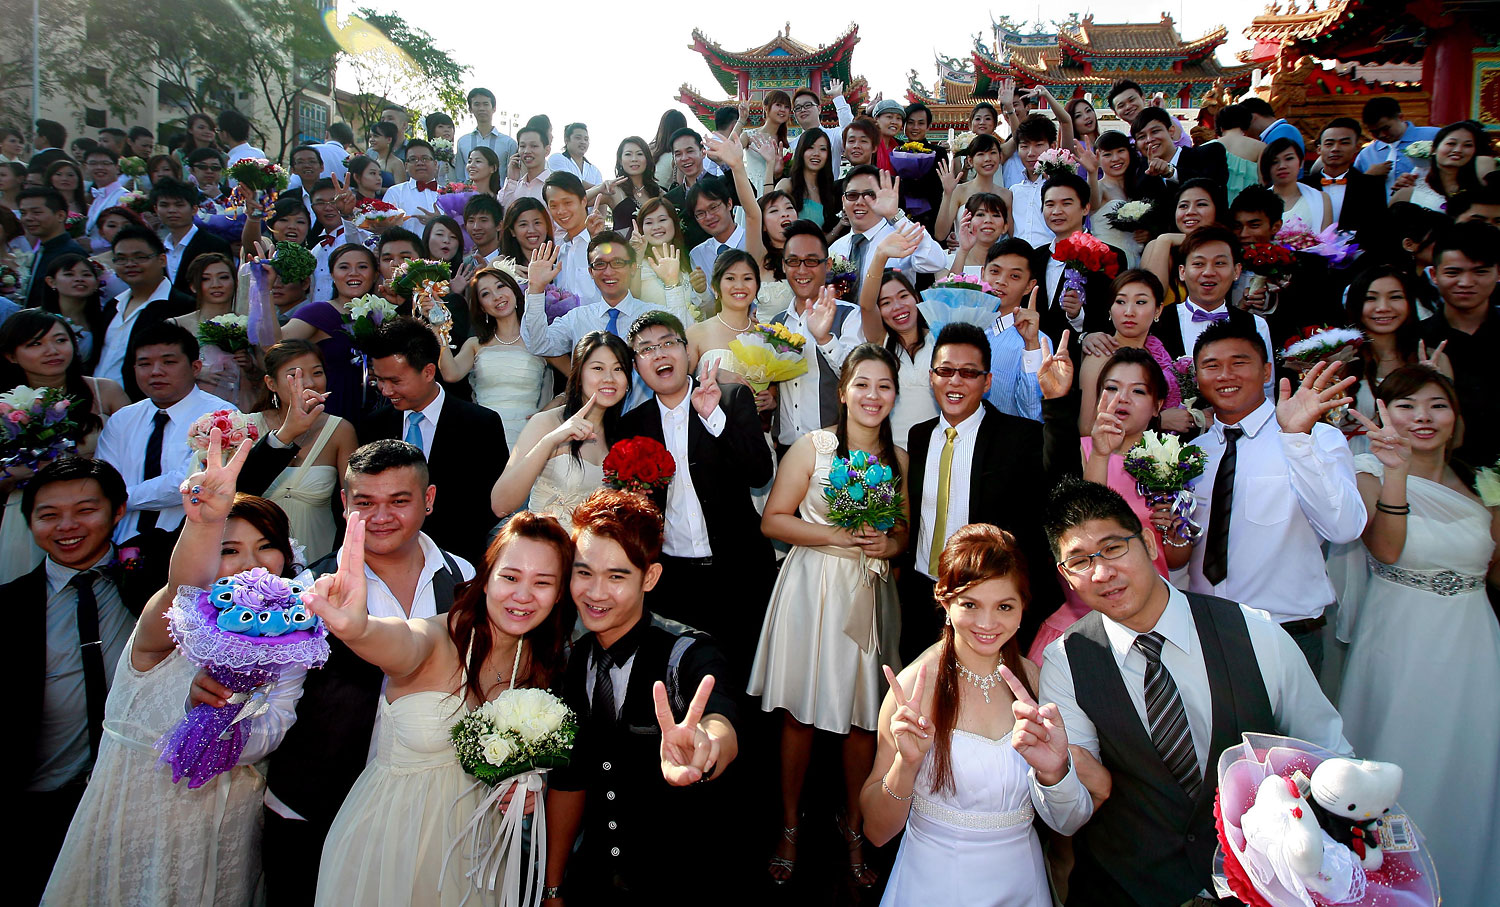 image: Newly wedded couples pose at a photo in Kuala Lumpur.